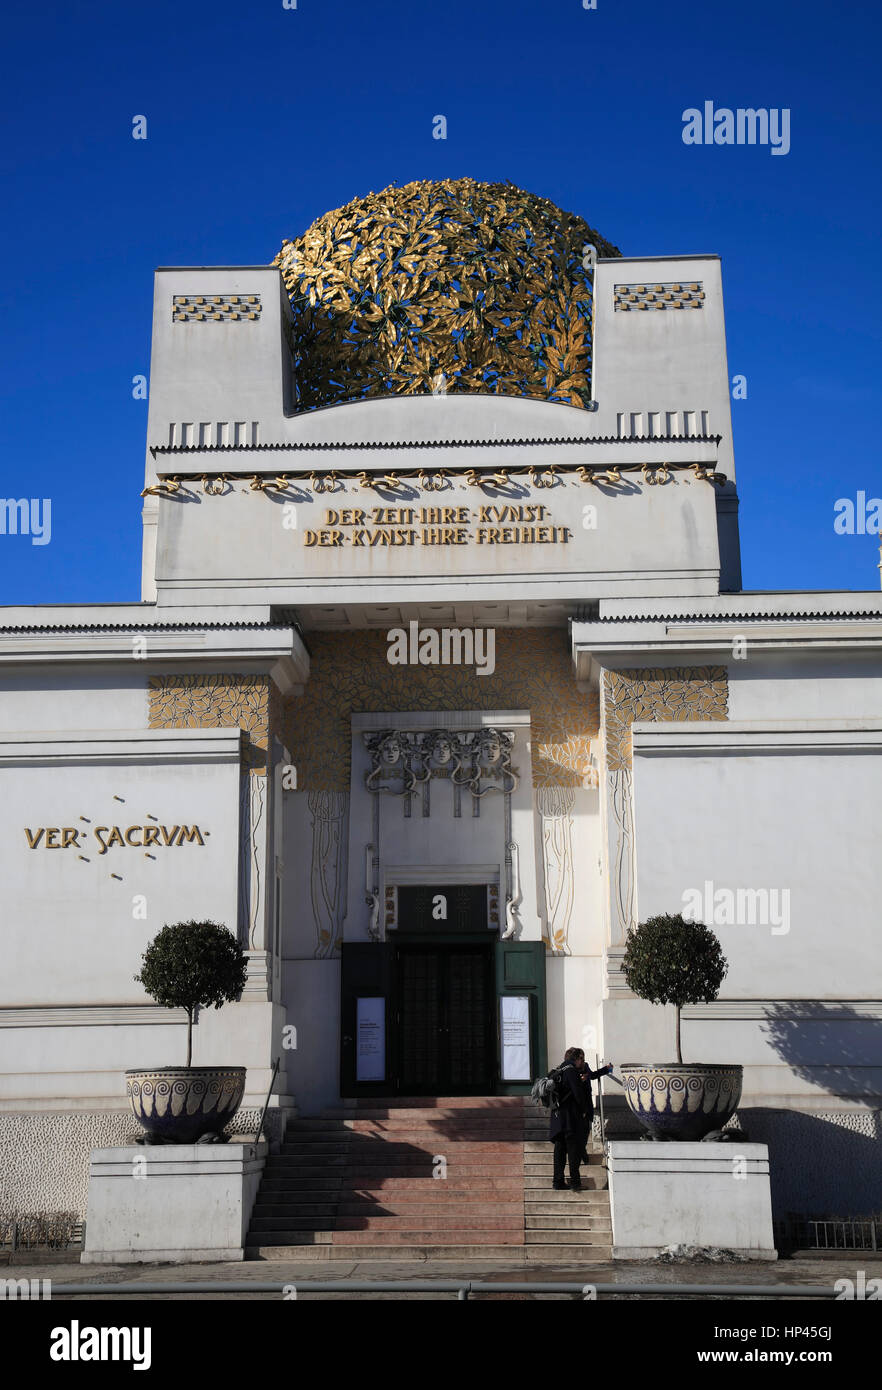 Vienna Secession building, Vienna, Austria, Europe - Stock Image